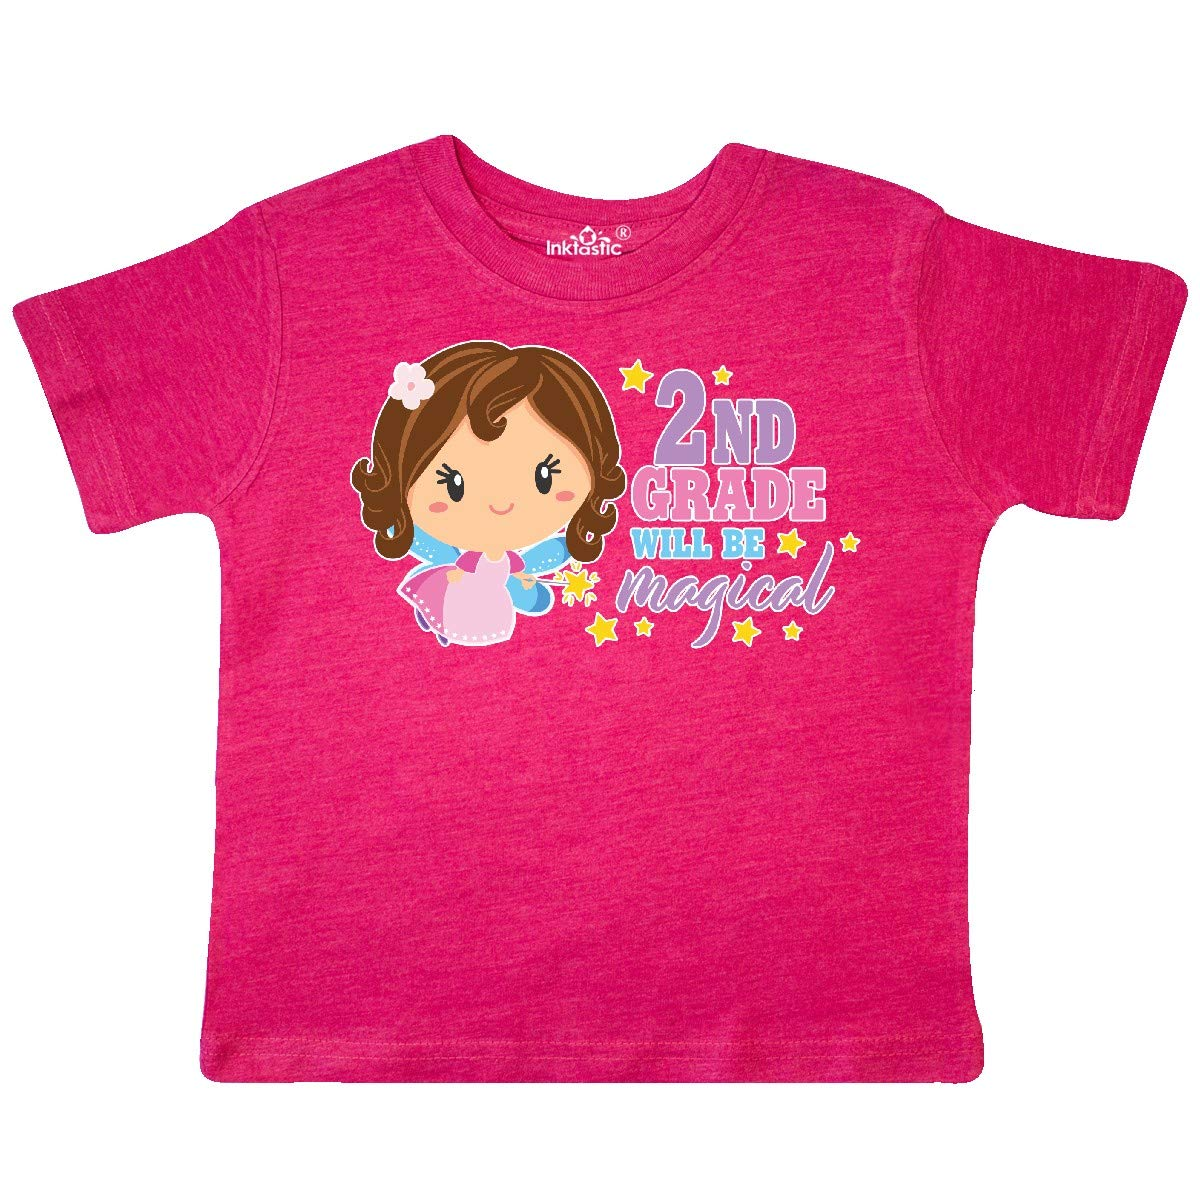 inktastic 2nd Grade Will Be Magical with Brown Haired Fairy Toddler T-Shirt